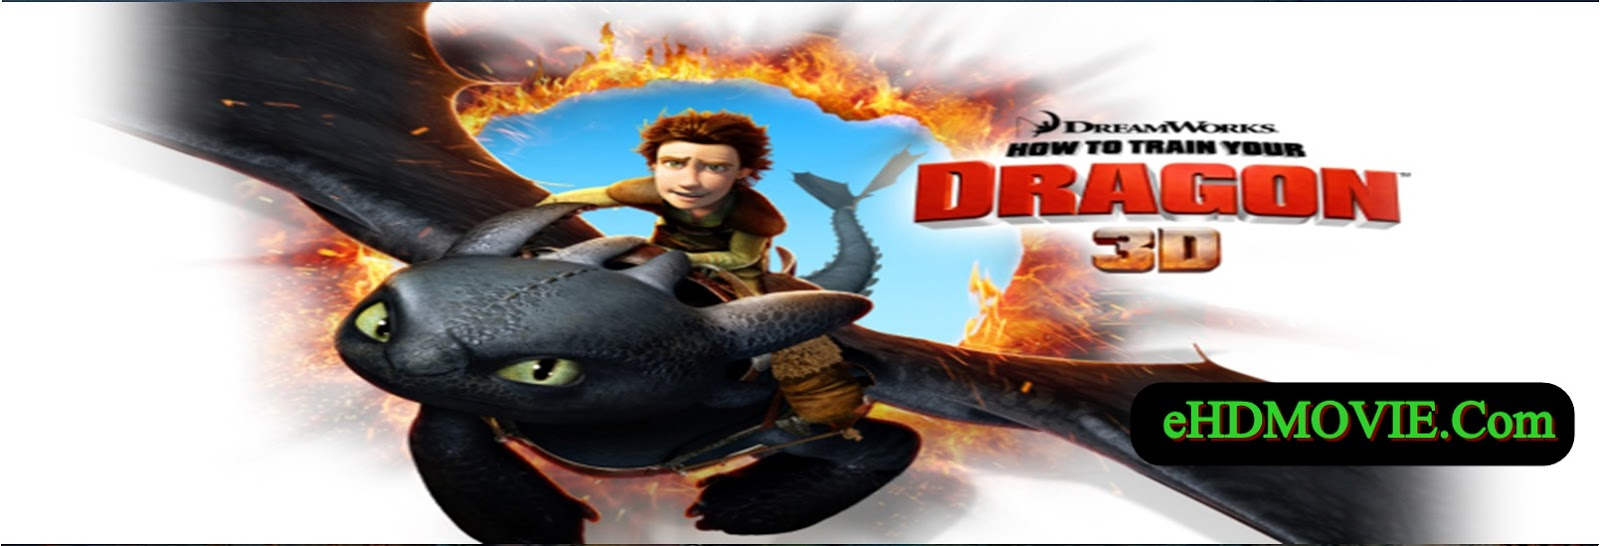 How To Train Your Dragon 2010 Full Movie Dual Audio [Hindi – English] 720p - HEVC - 480p ORG BRRip 300MB - 450MB - 750MB ESubs Free Download